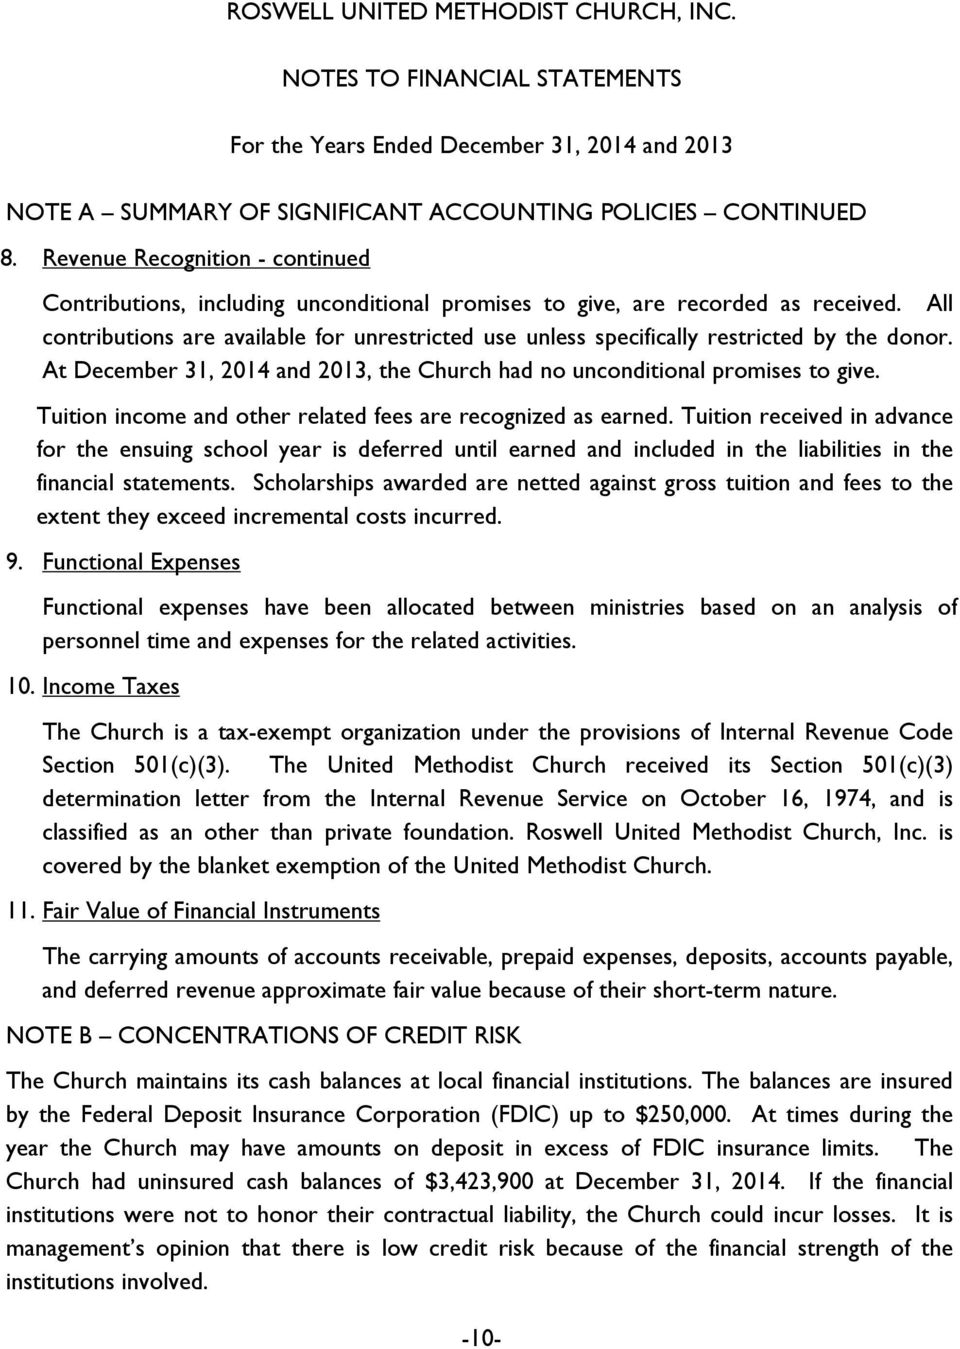 All contributions are available for unrestricted use unless specifically restricted by the donor. At December 31, 2014 and 2013, the Church had no unconditional promises to give.